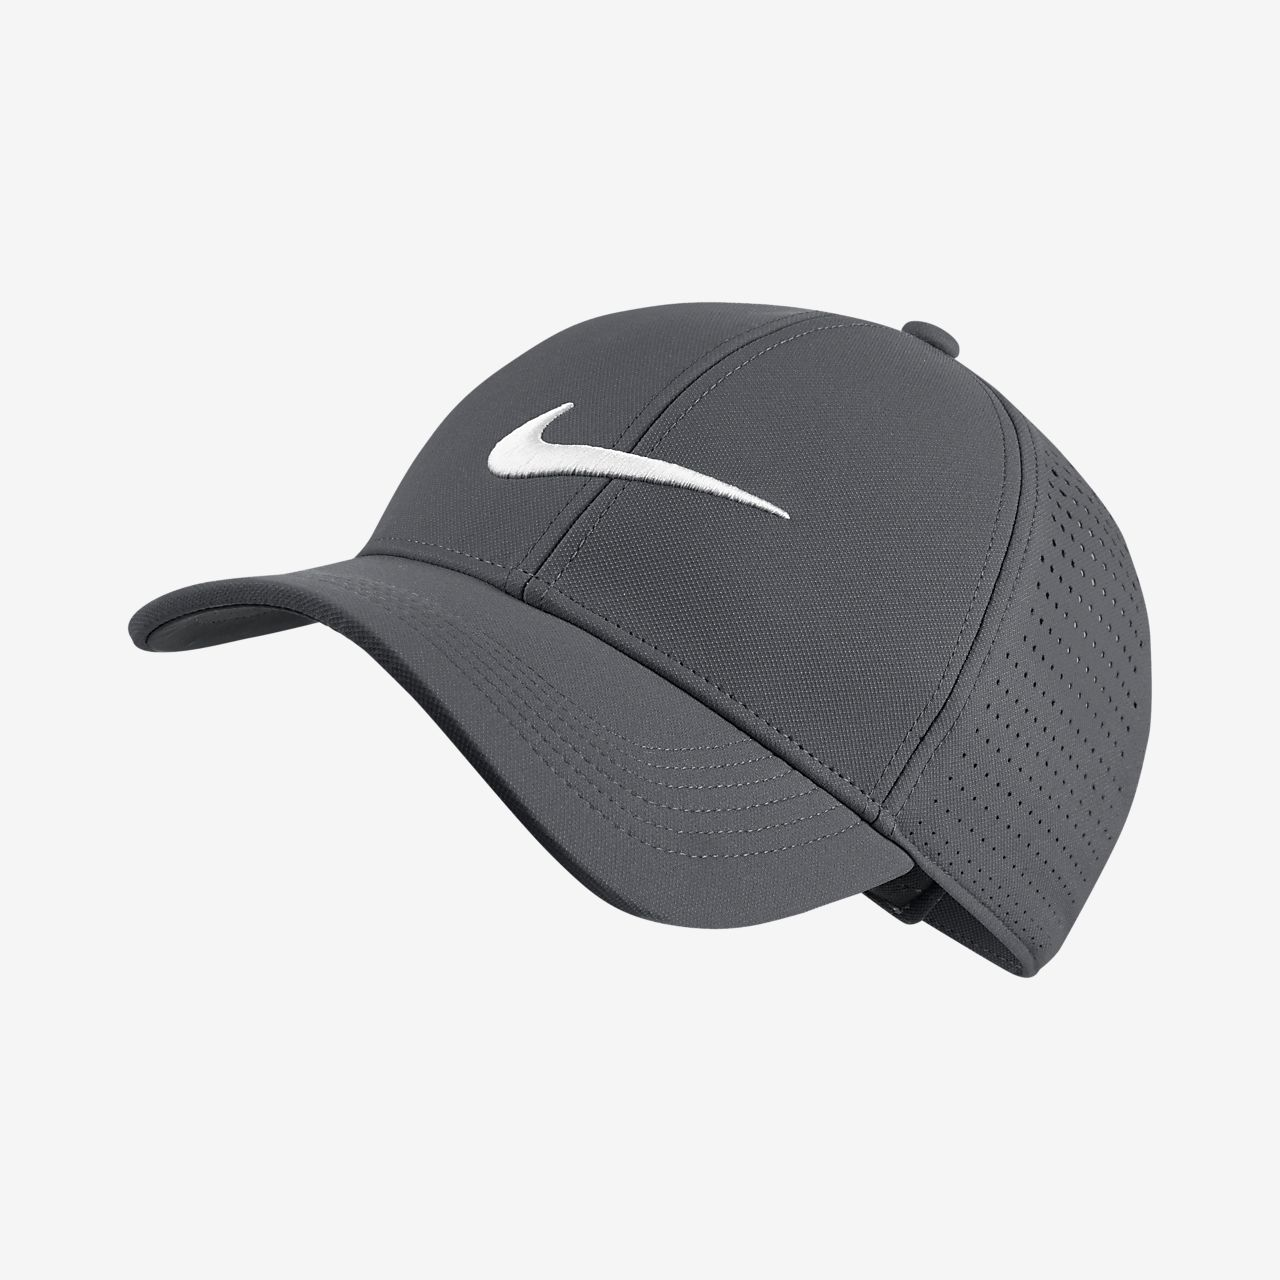 92ca691b657 Nike Legacy 91 Perforated Adjustable Golf Hat. Nike.com